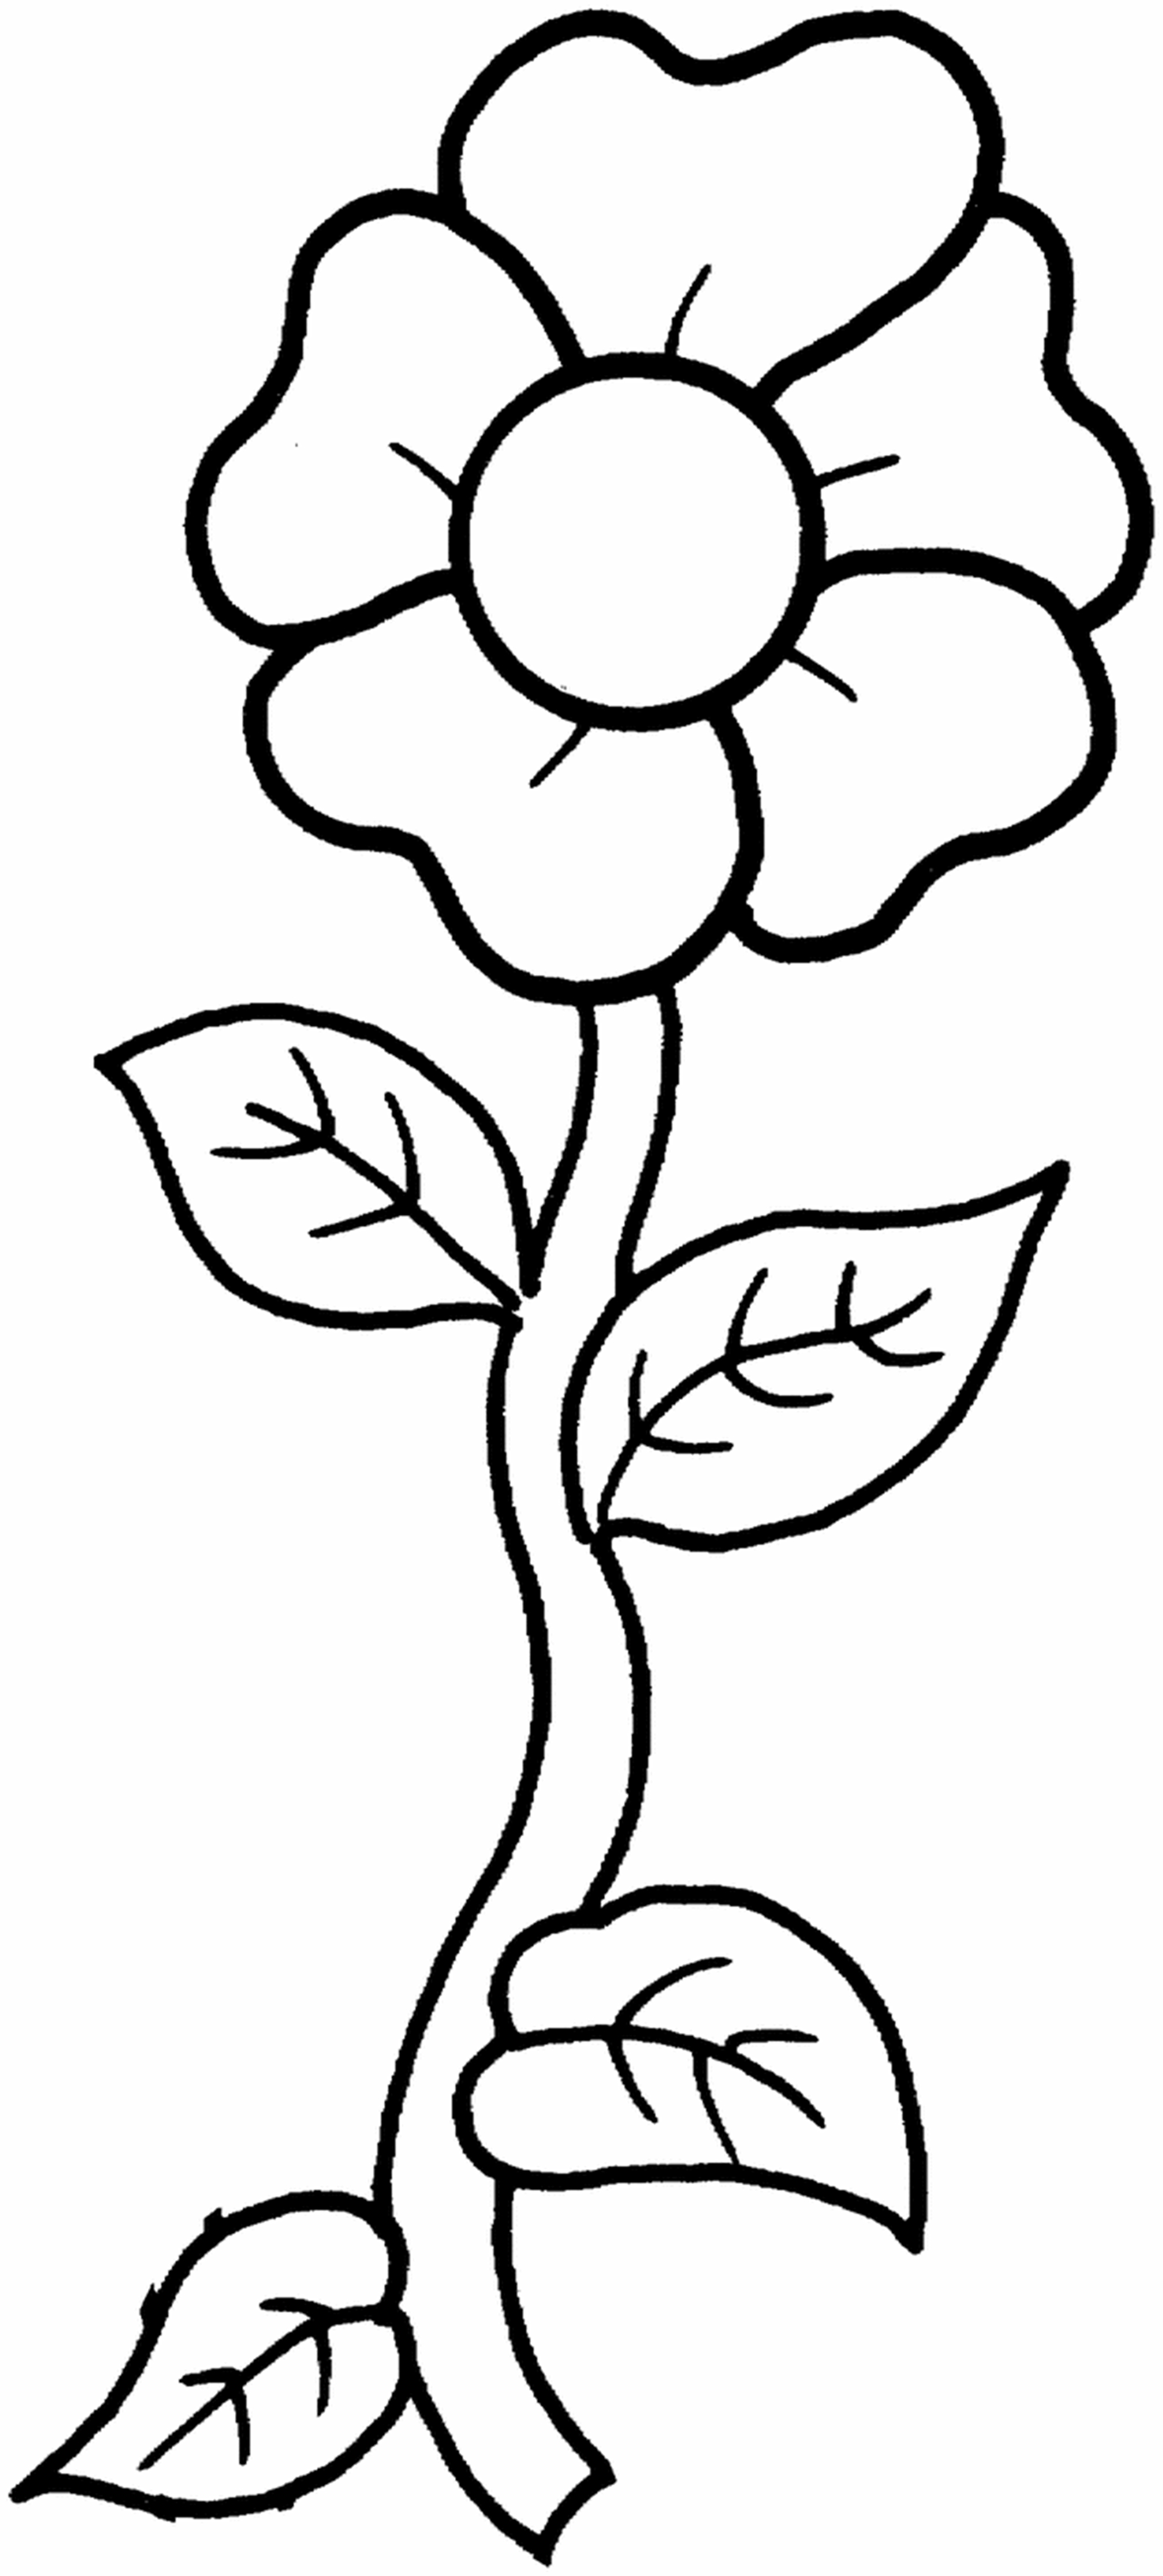 coloring page flowers roses flowers coloring page free printable coloring pages flowers coloring page